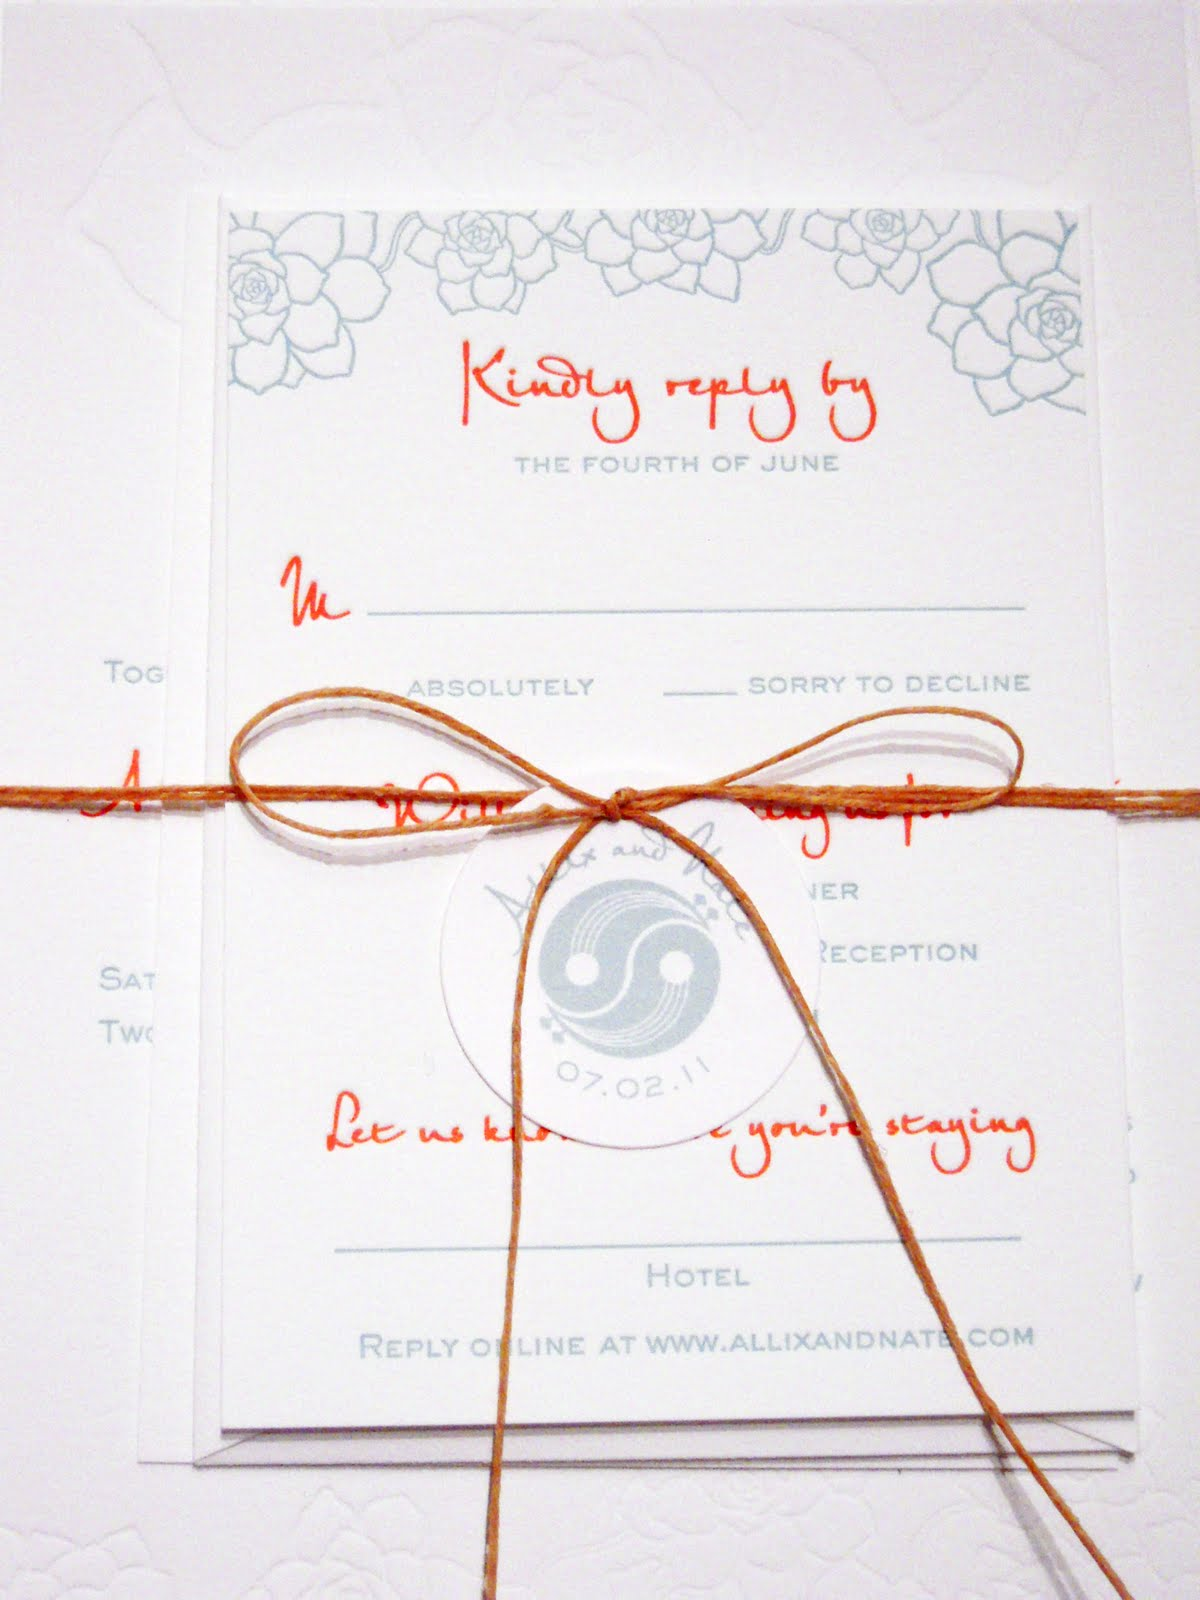 Elegant Wedding Invitations 2